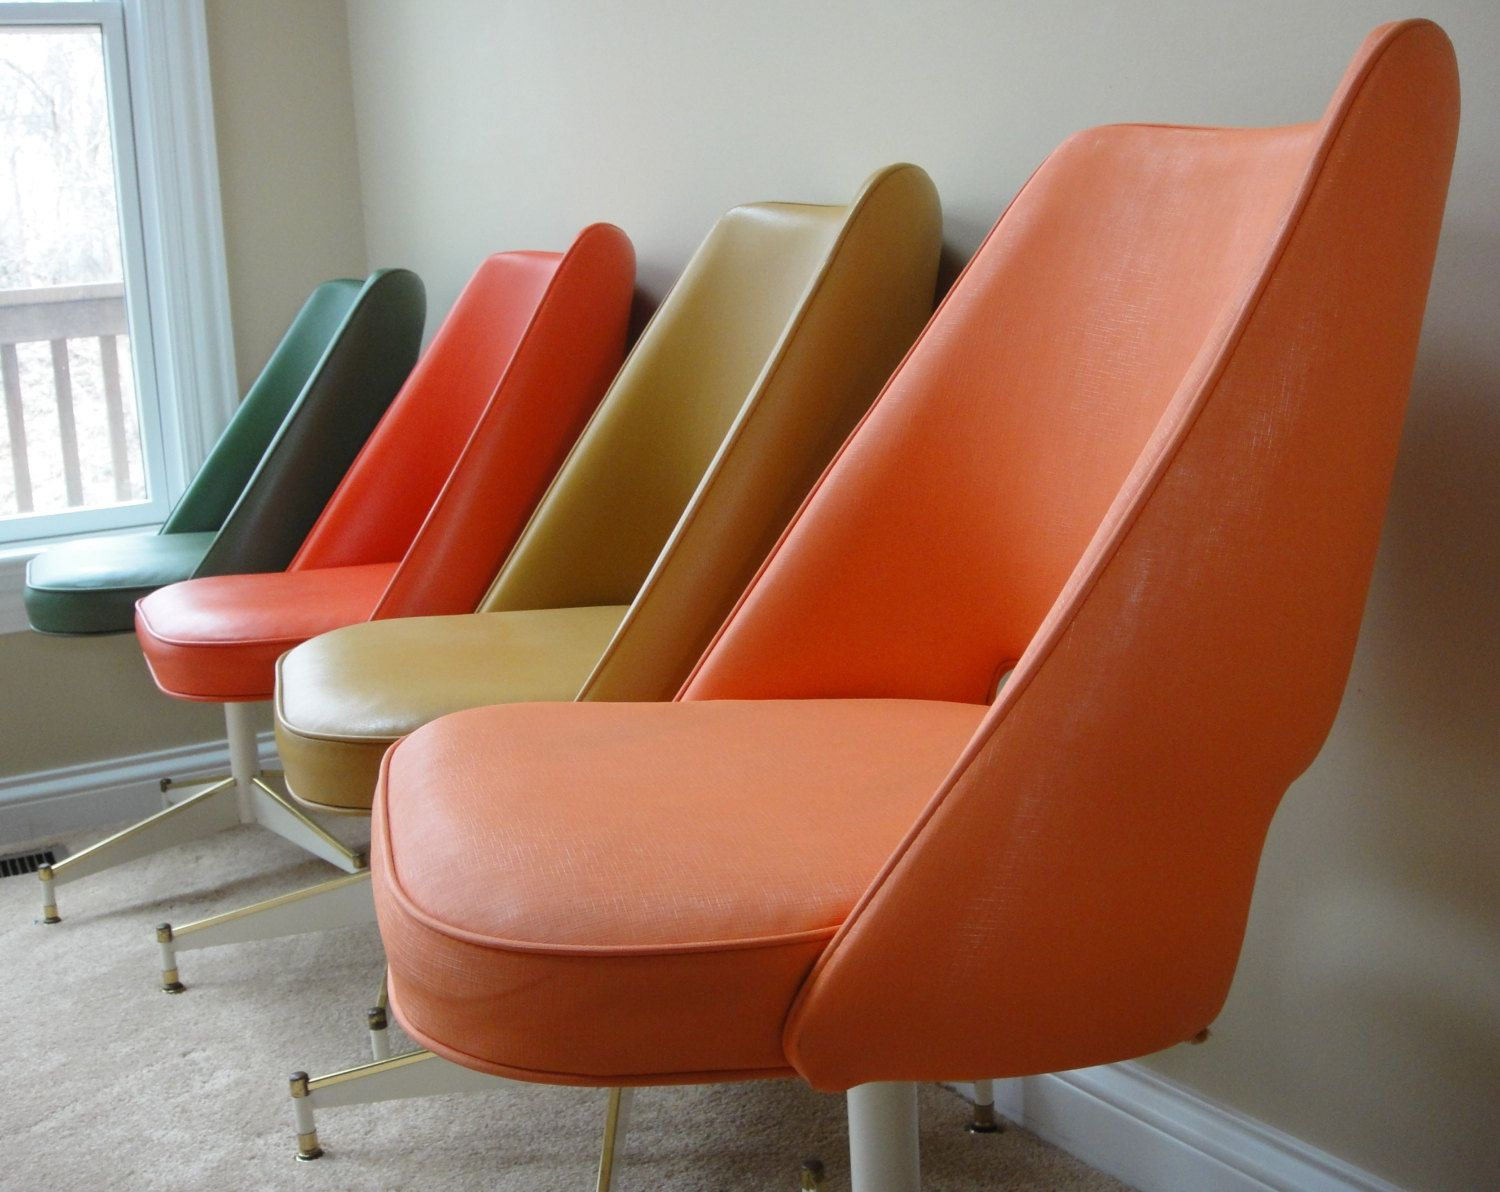 Prime Set Of Four Colorful Vintage B Brody Seating Co Chicago Il Gmtry Best Dining Table And Chair Ideas Images Gmtryco